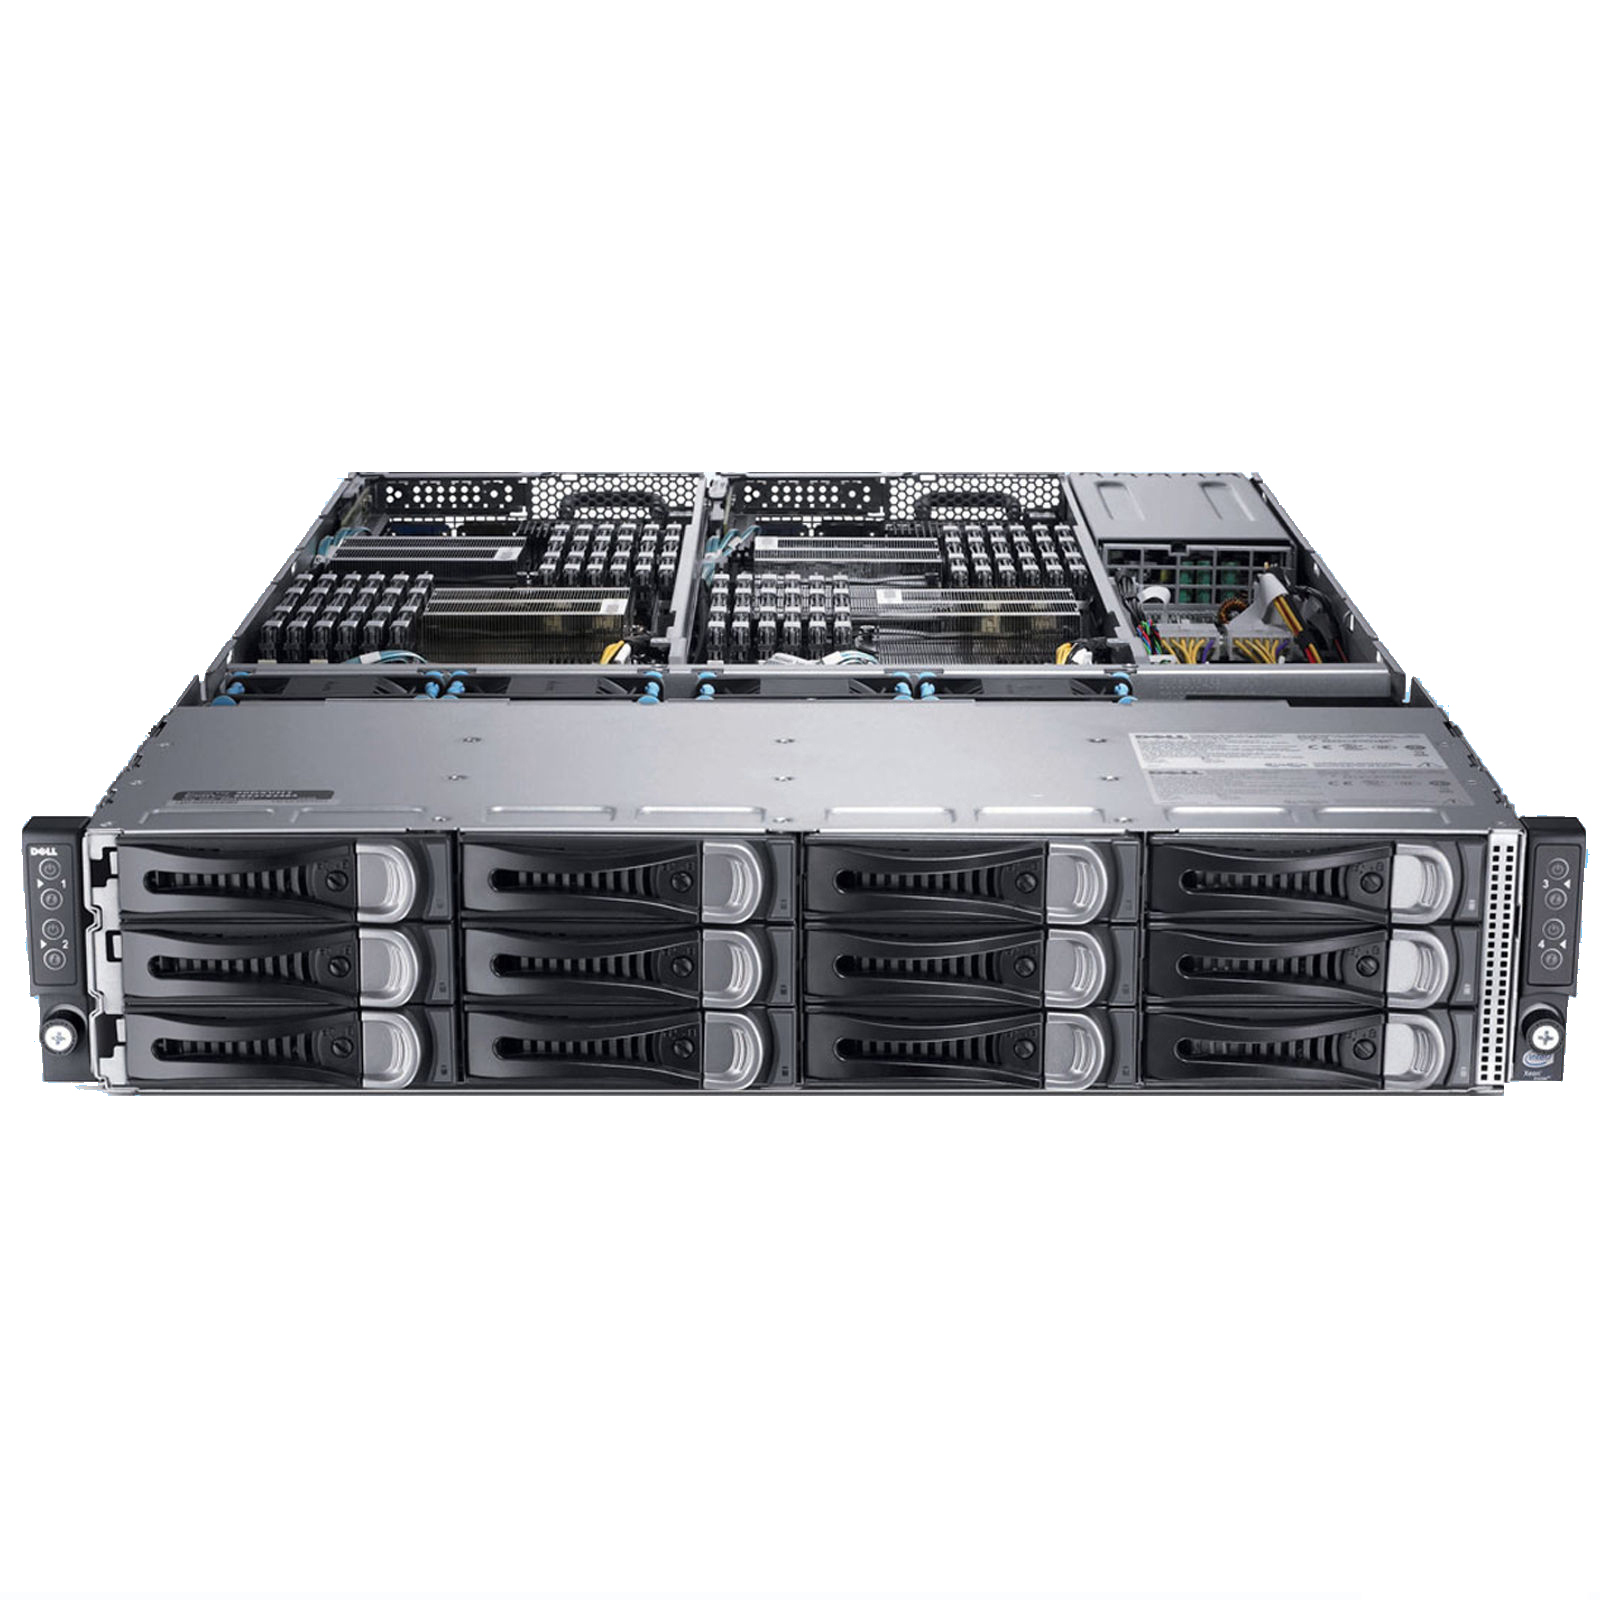 SERVER DELL POWEREDGE C6320 E5-2600 v4 / 4 NODE BAREBONE SFF